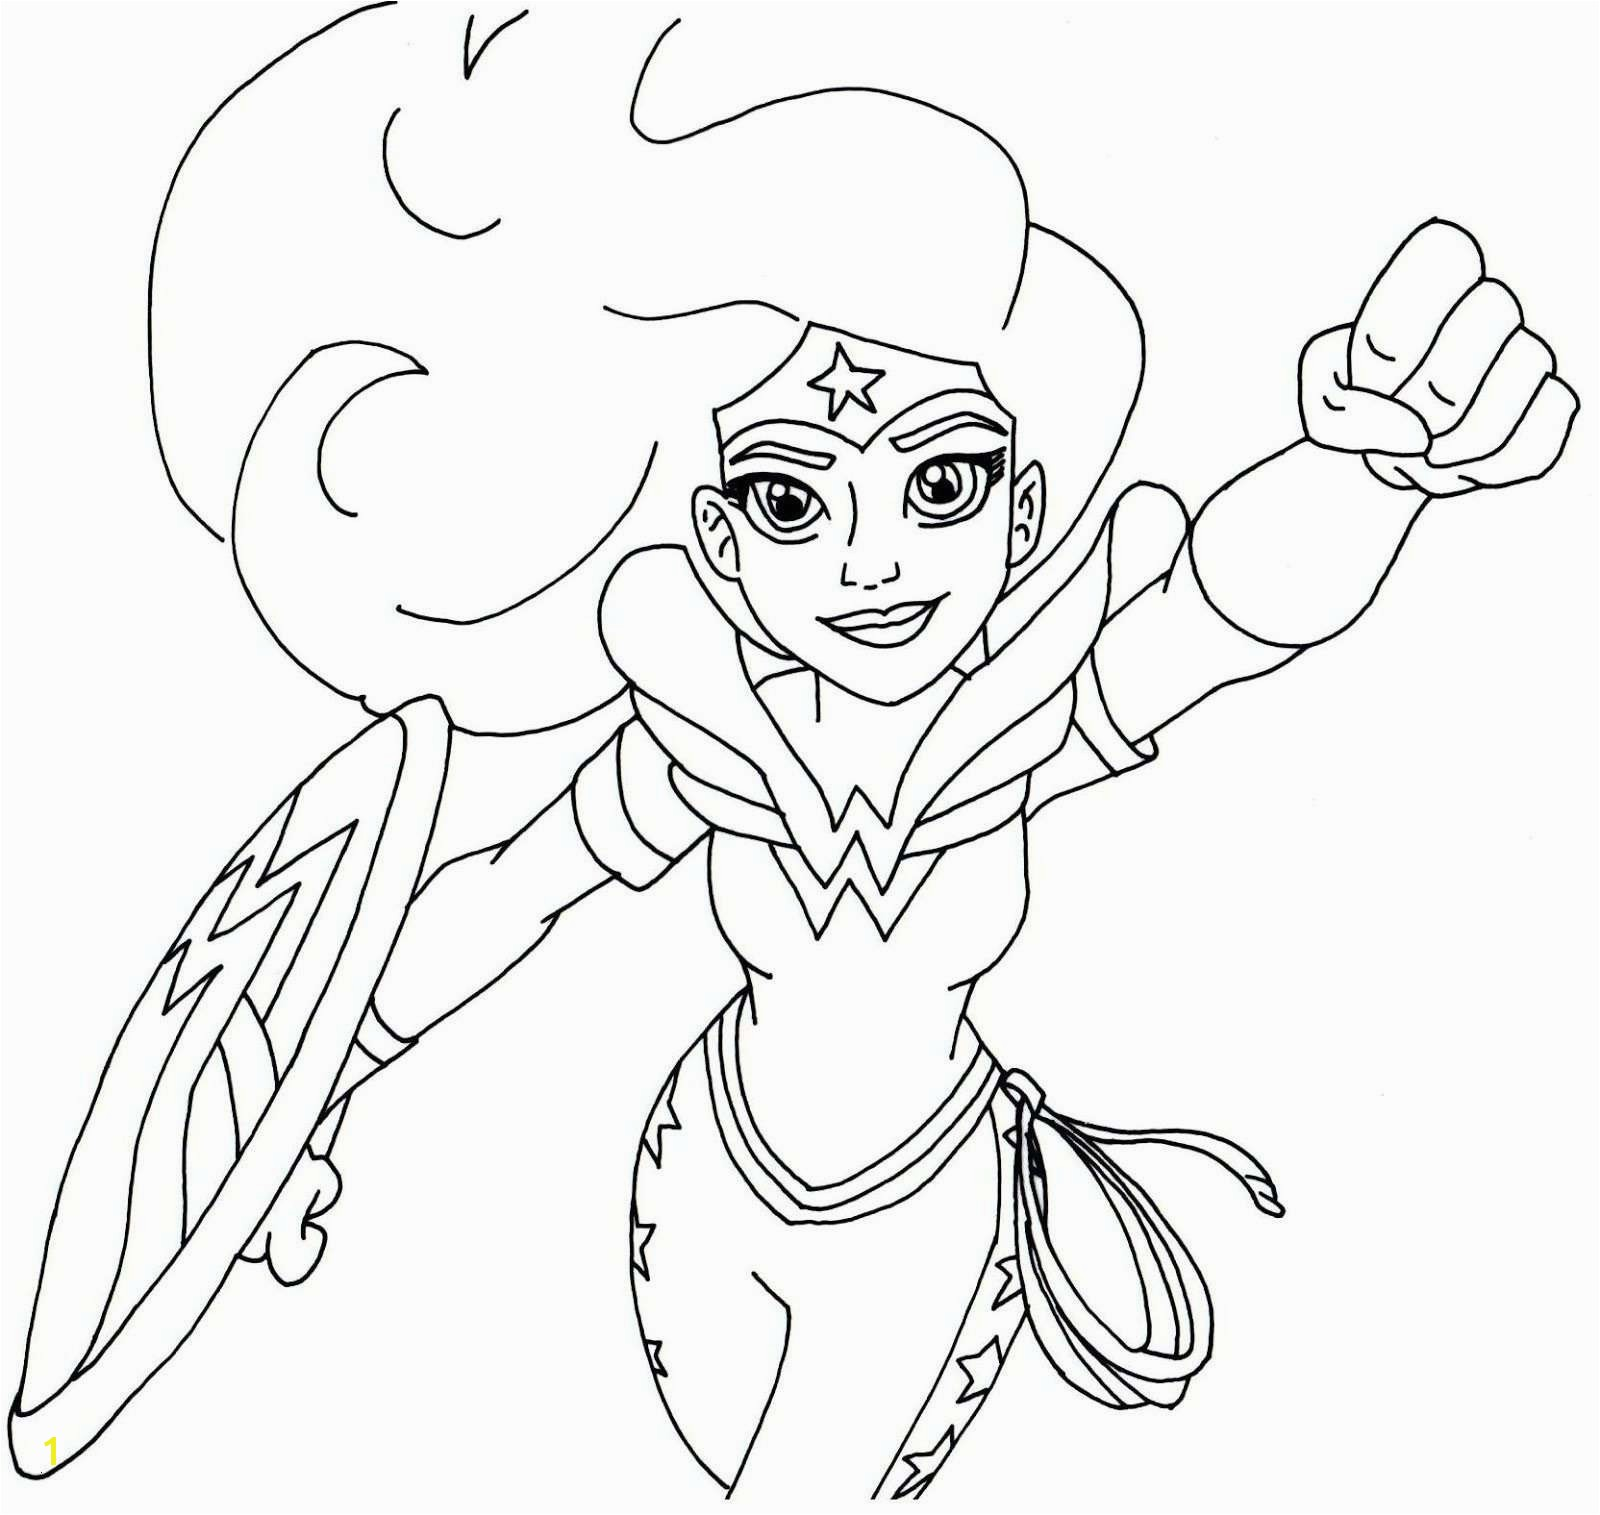 Super Hero Coloring Lovely Super Hero Coloring Fresh Superhero Coloring Pages Awesome 0 0d